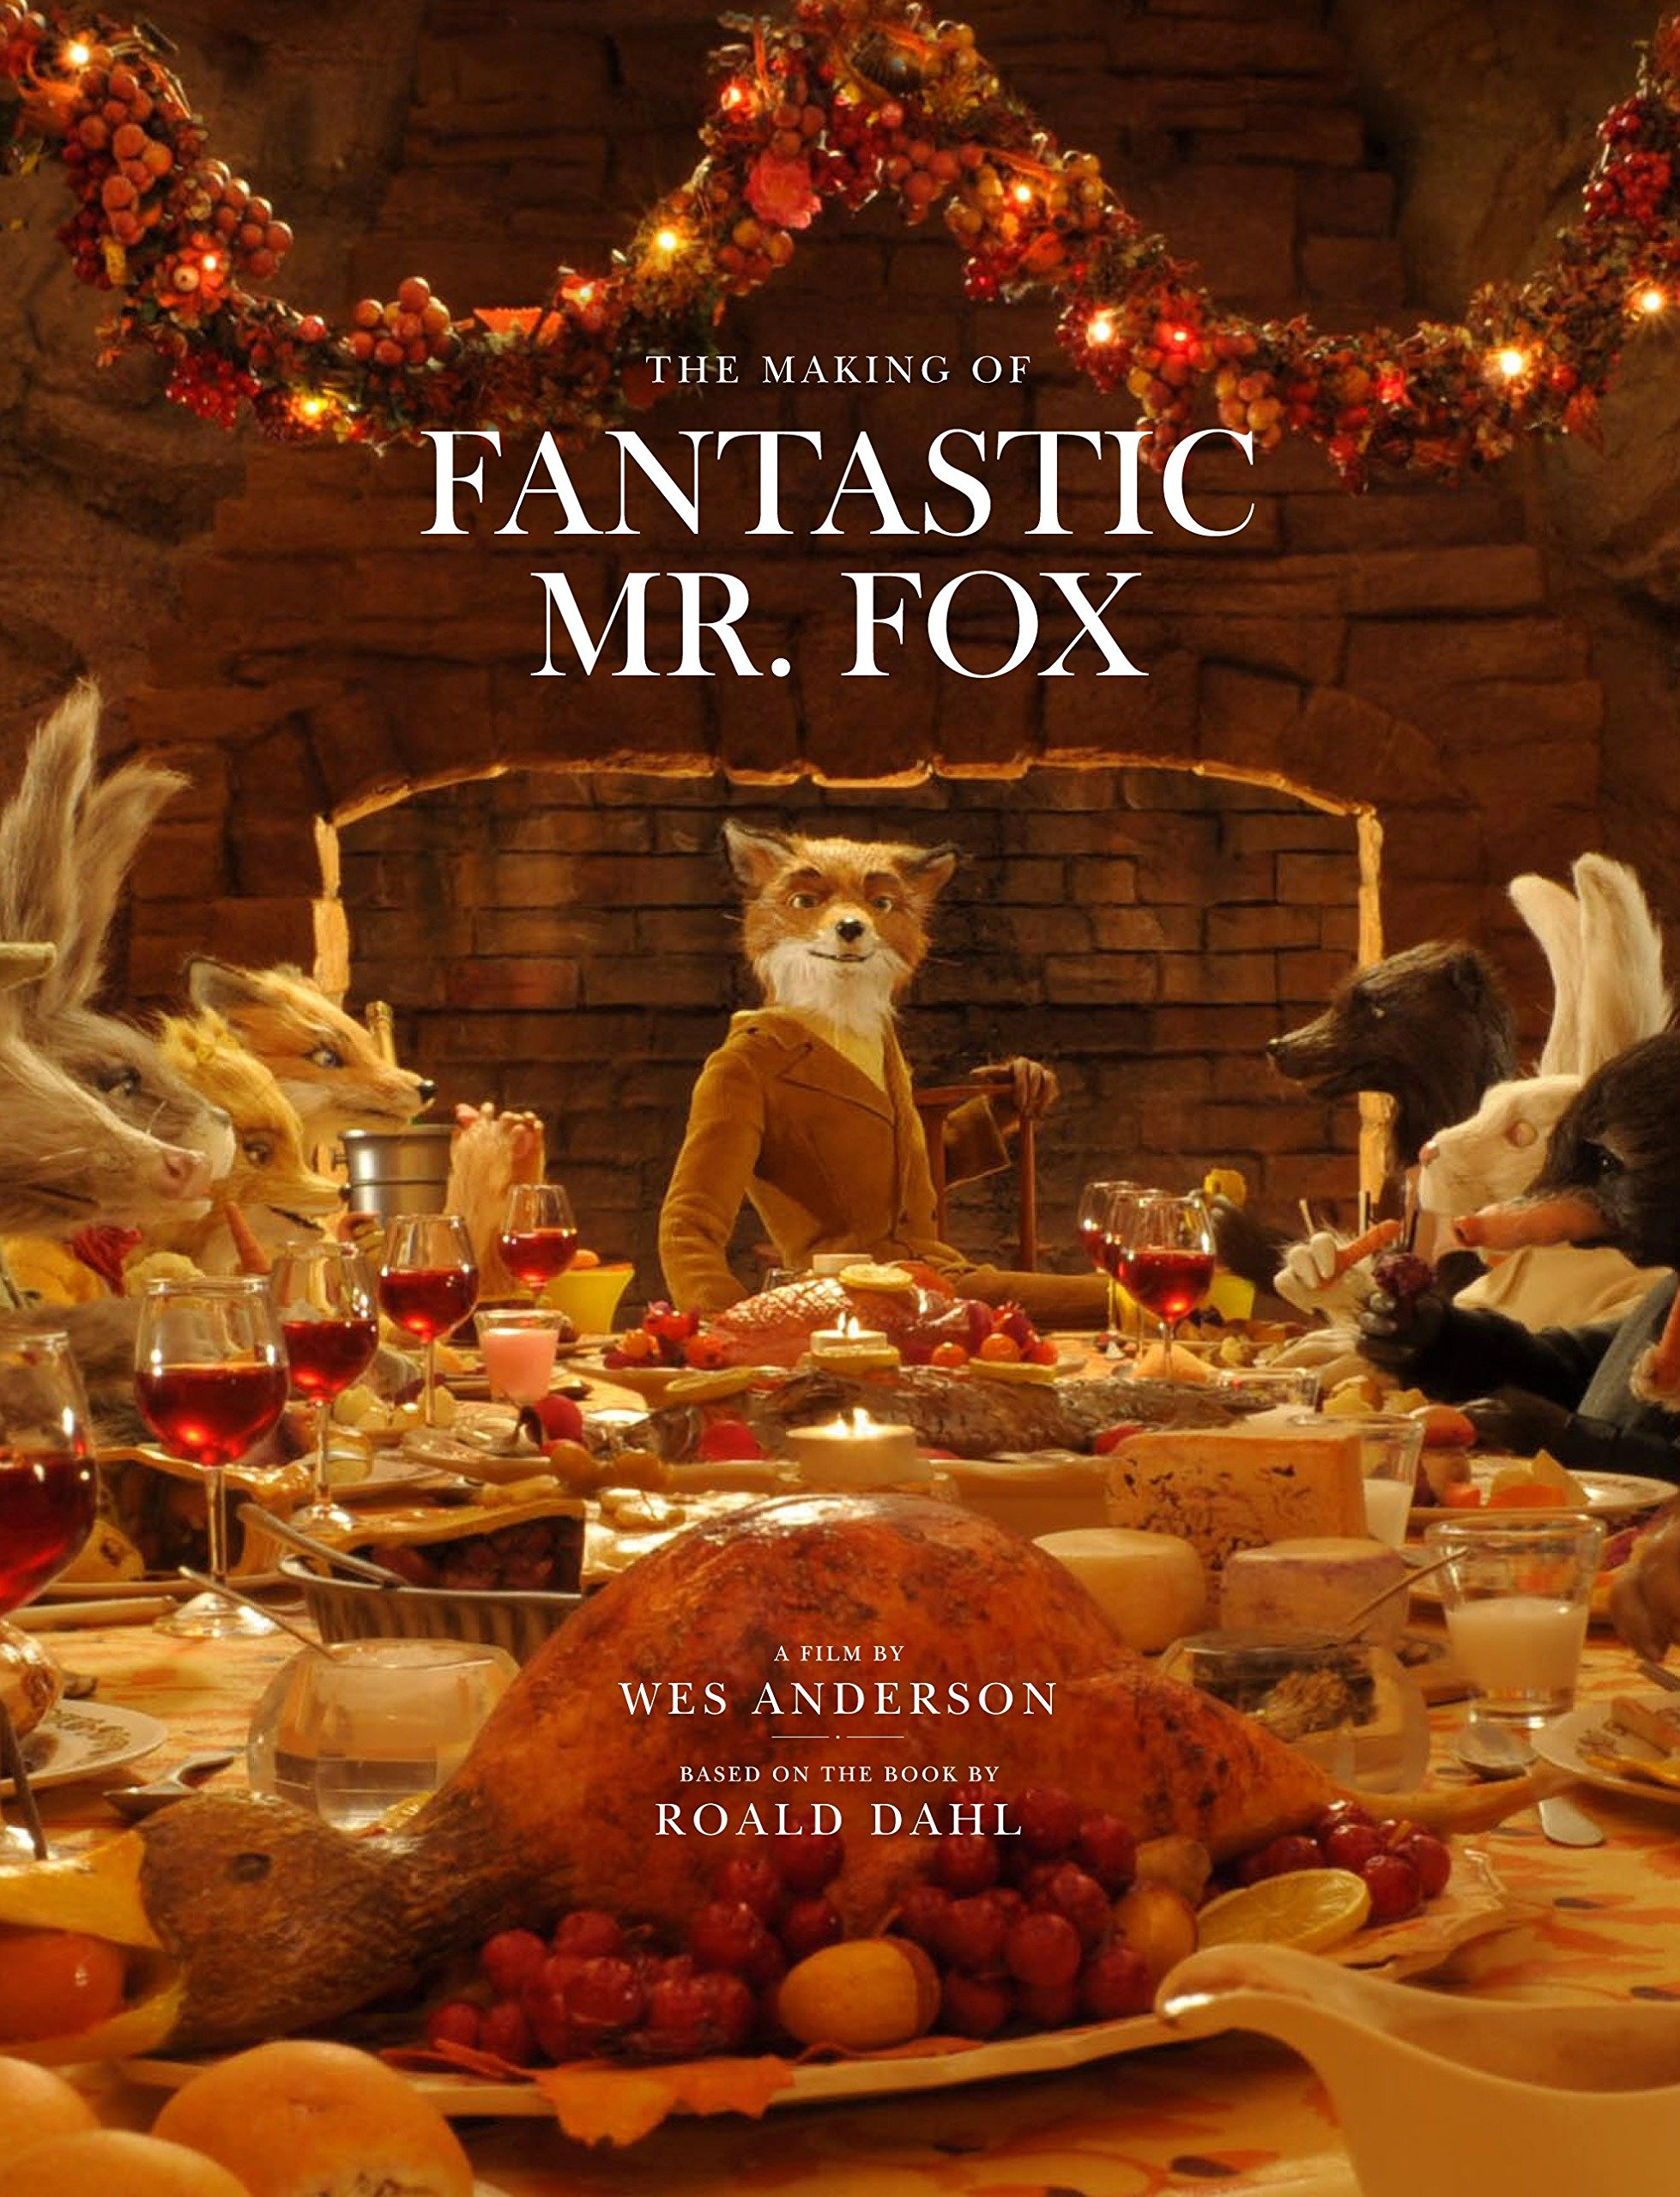 Amazon Com The Making Of Fantastic Mr Fox 9780847833542 Anderson Wes Books